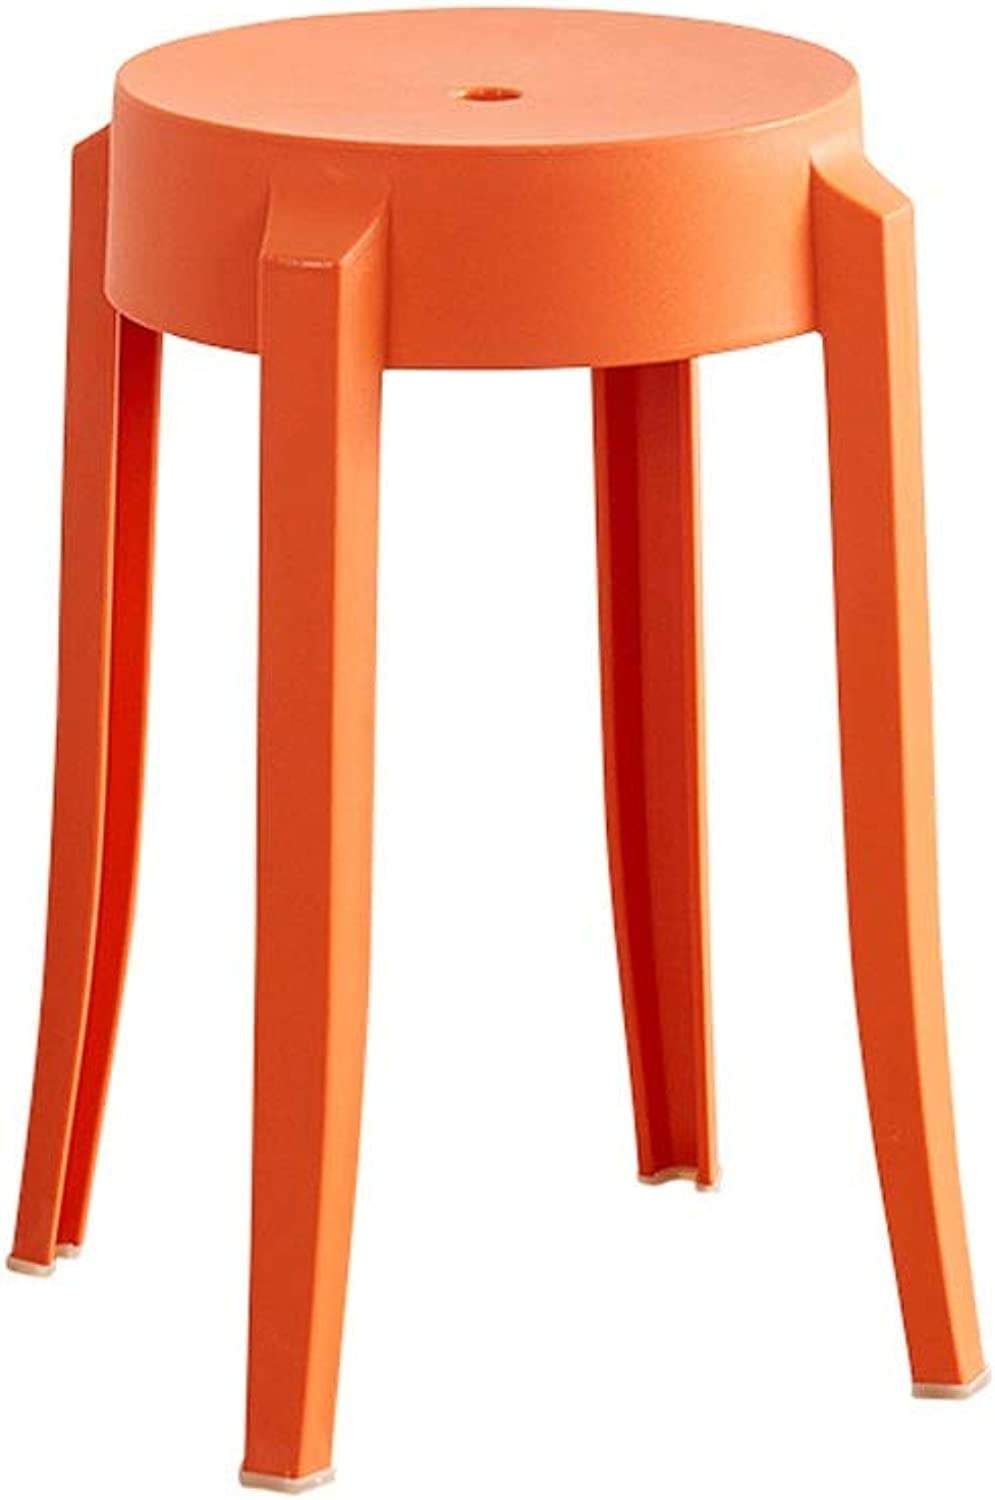 A+ Household Plastic Round Stool,Thickened Living Room Small Bench,Restaurant Simple High Dining Table Chair,Non-Slip PP Four-Legged Stool - 26cmX47cm (color   orange)